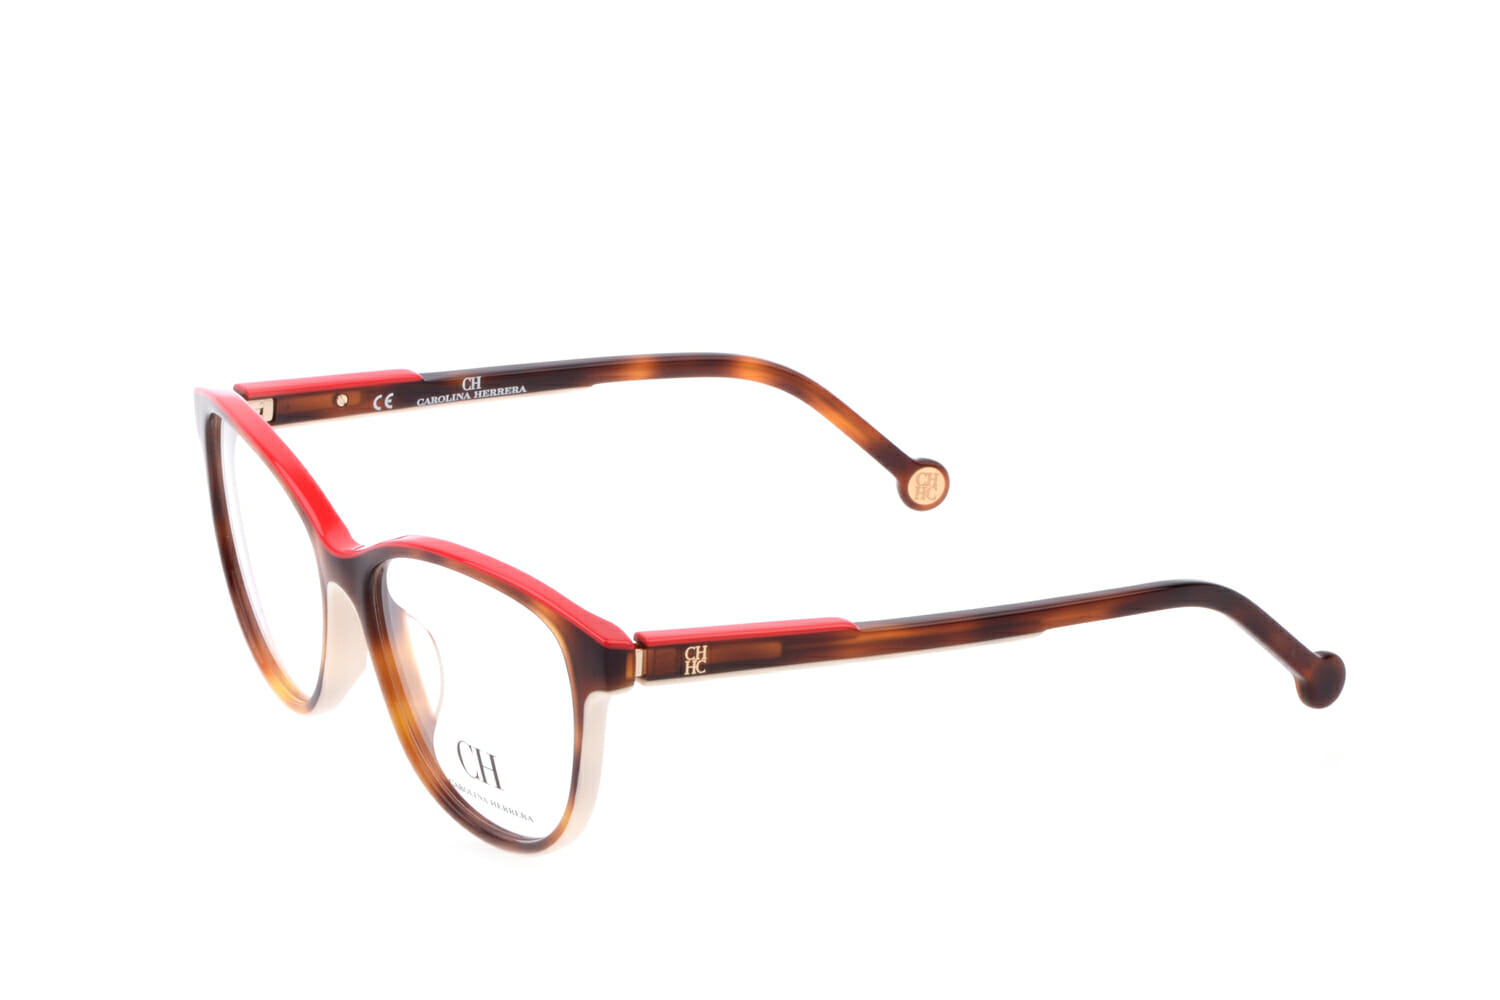 CH CAROLINA HERRERA EYEWEAR OPTICAL WOMEN SIDE